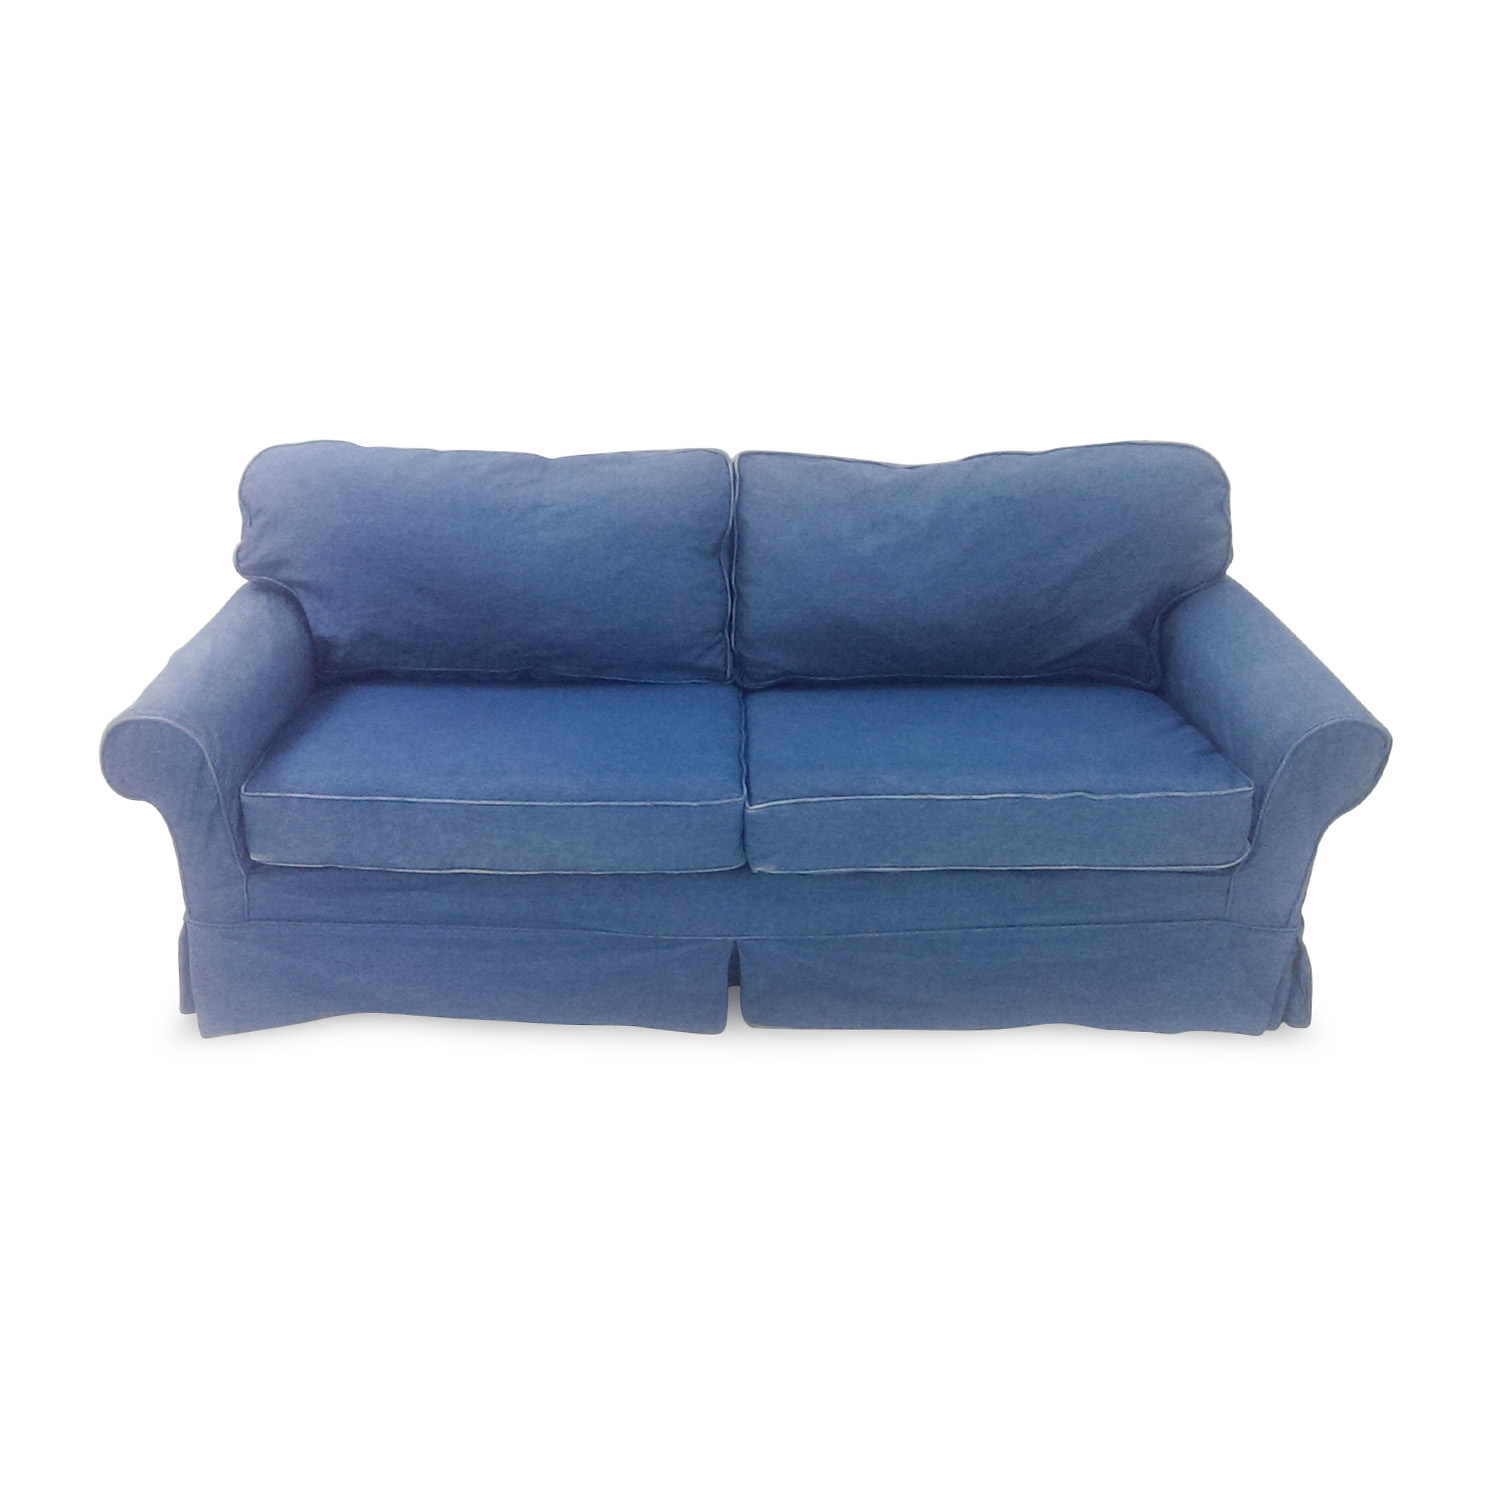 Blue Denim Couch used